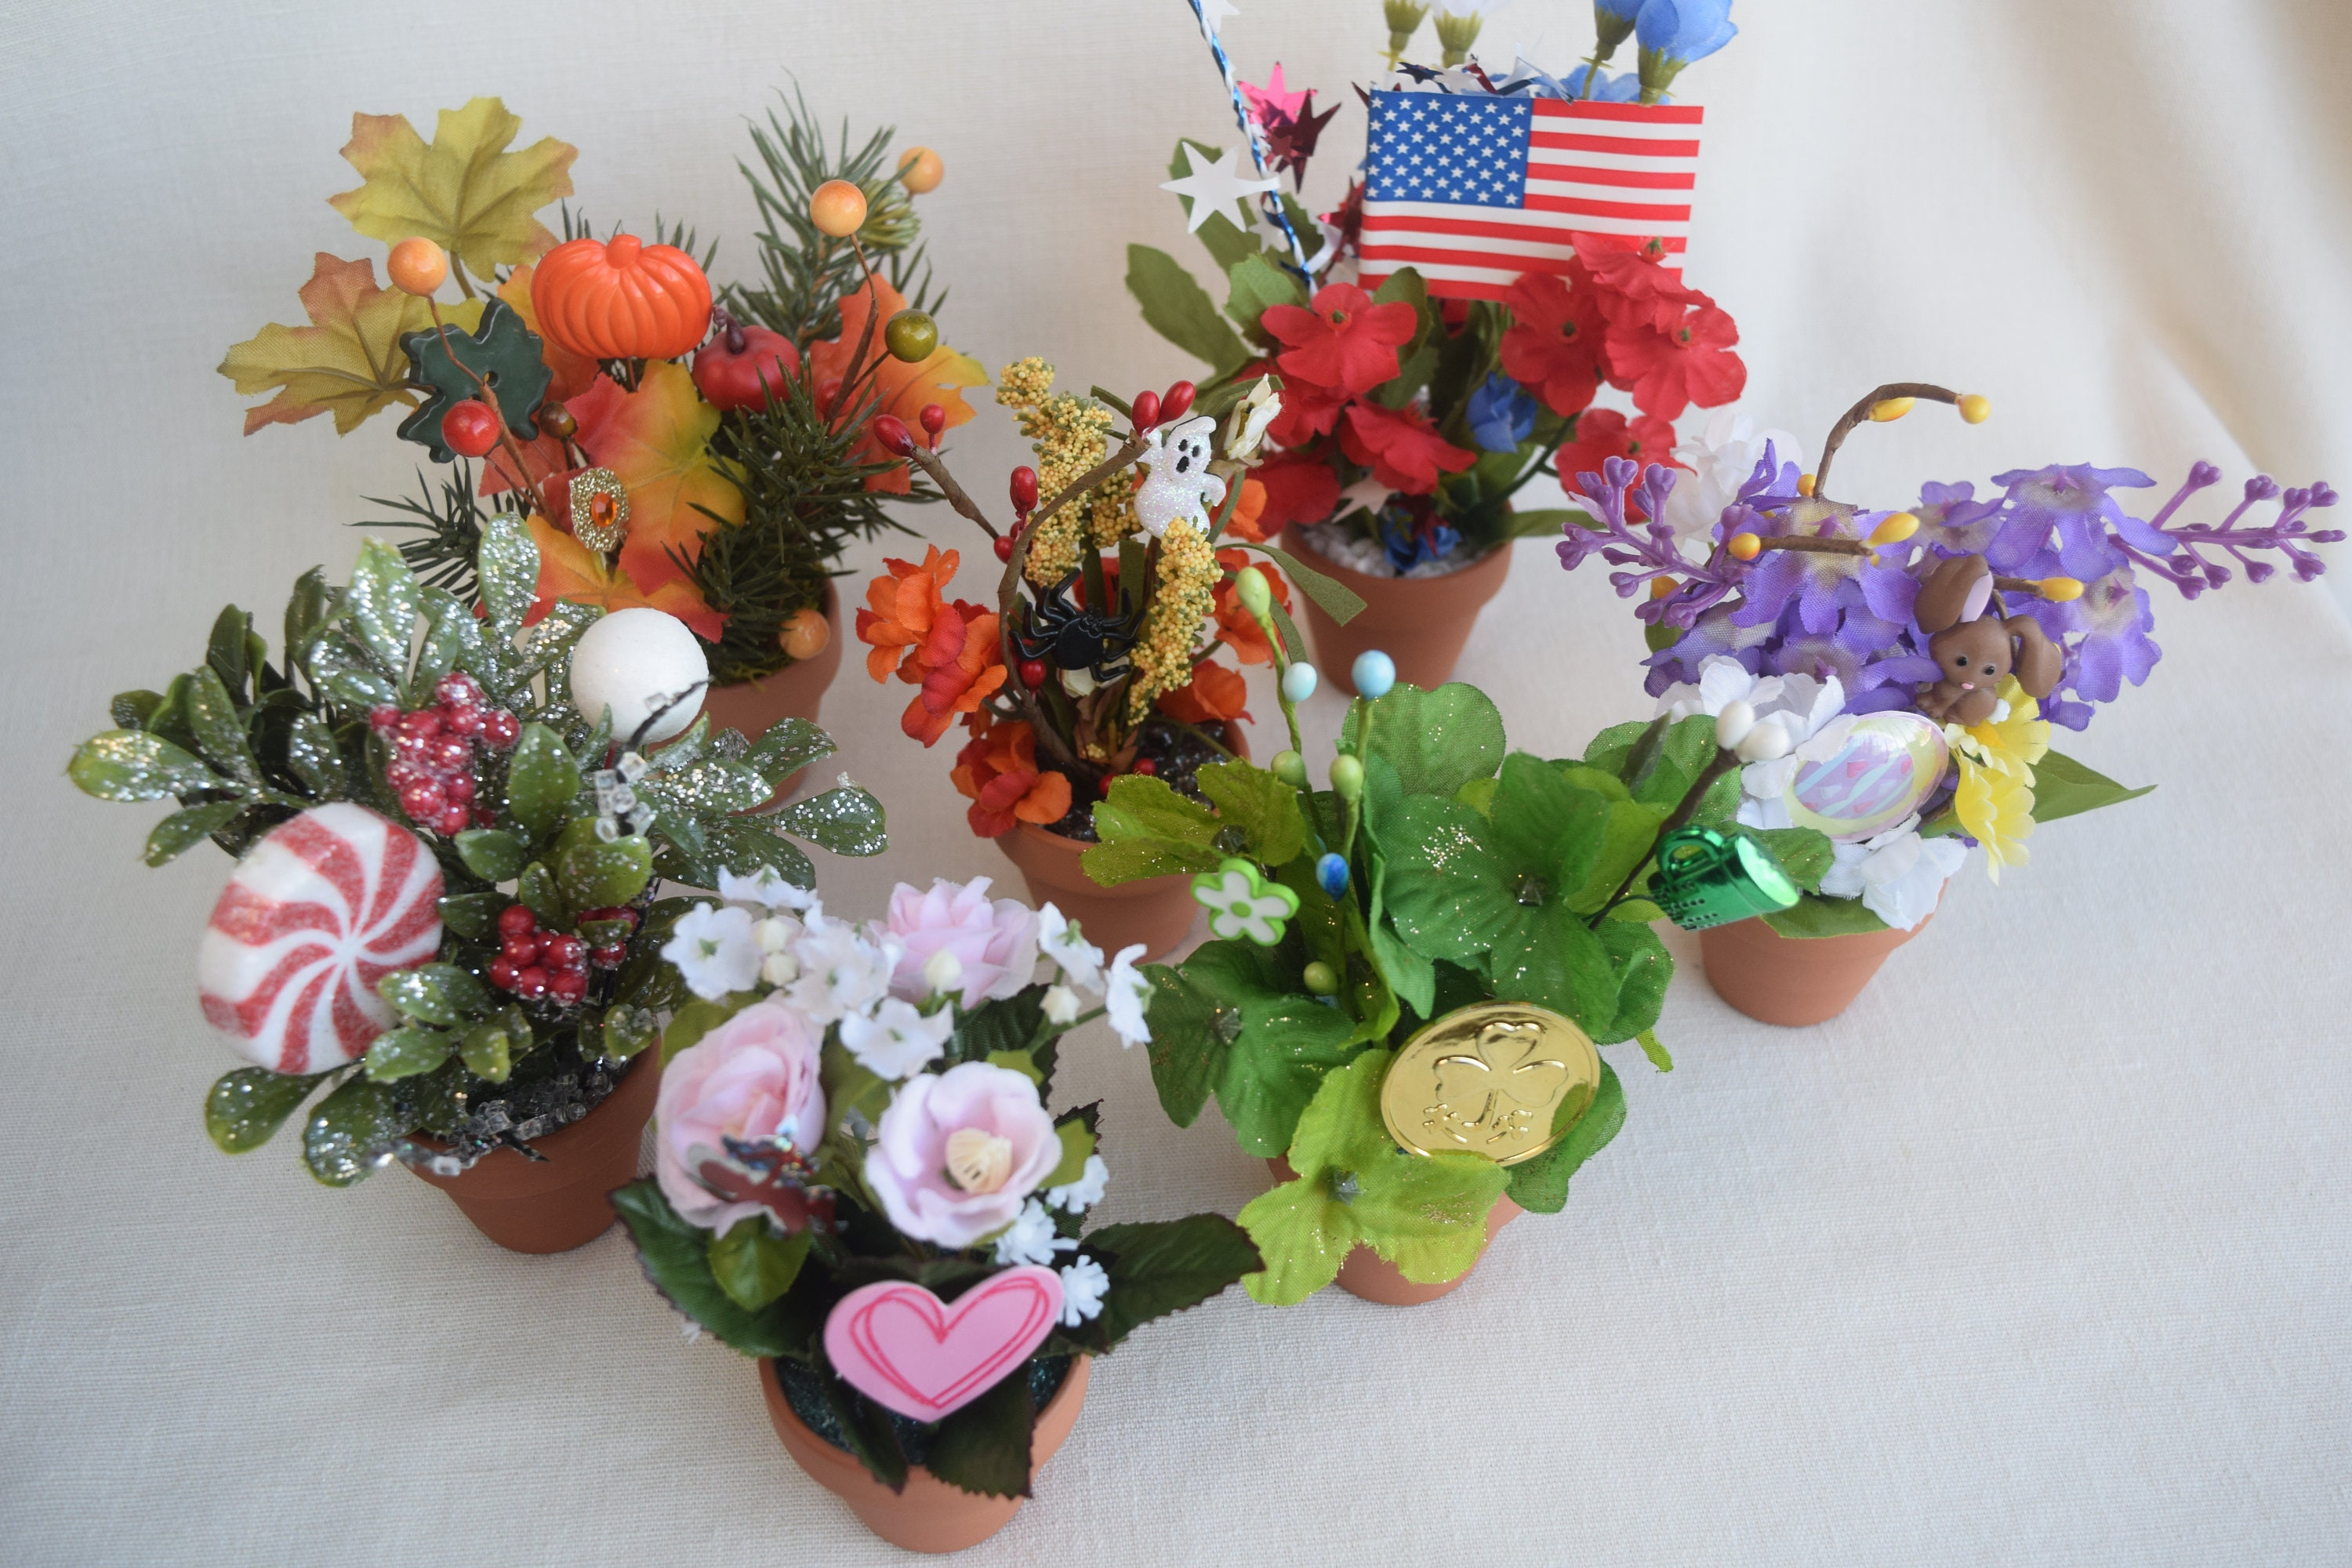 A Set Of 7 Holiday Seasonal Miniature Clay Flower Pots With Etsy